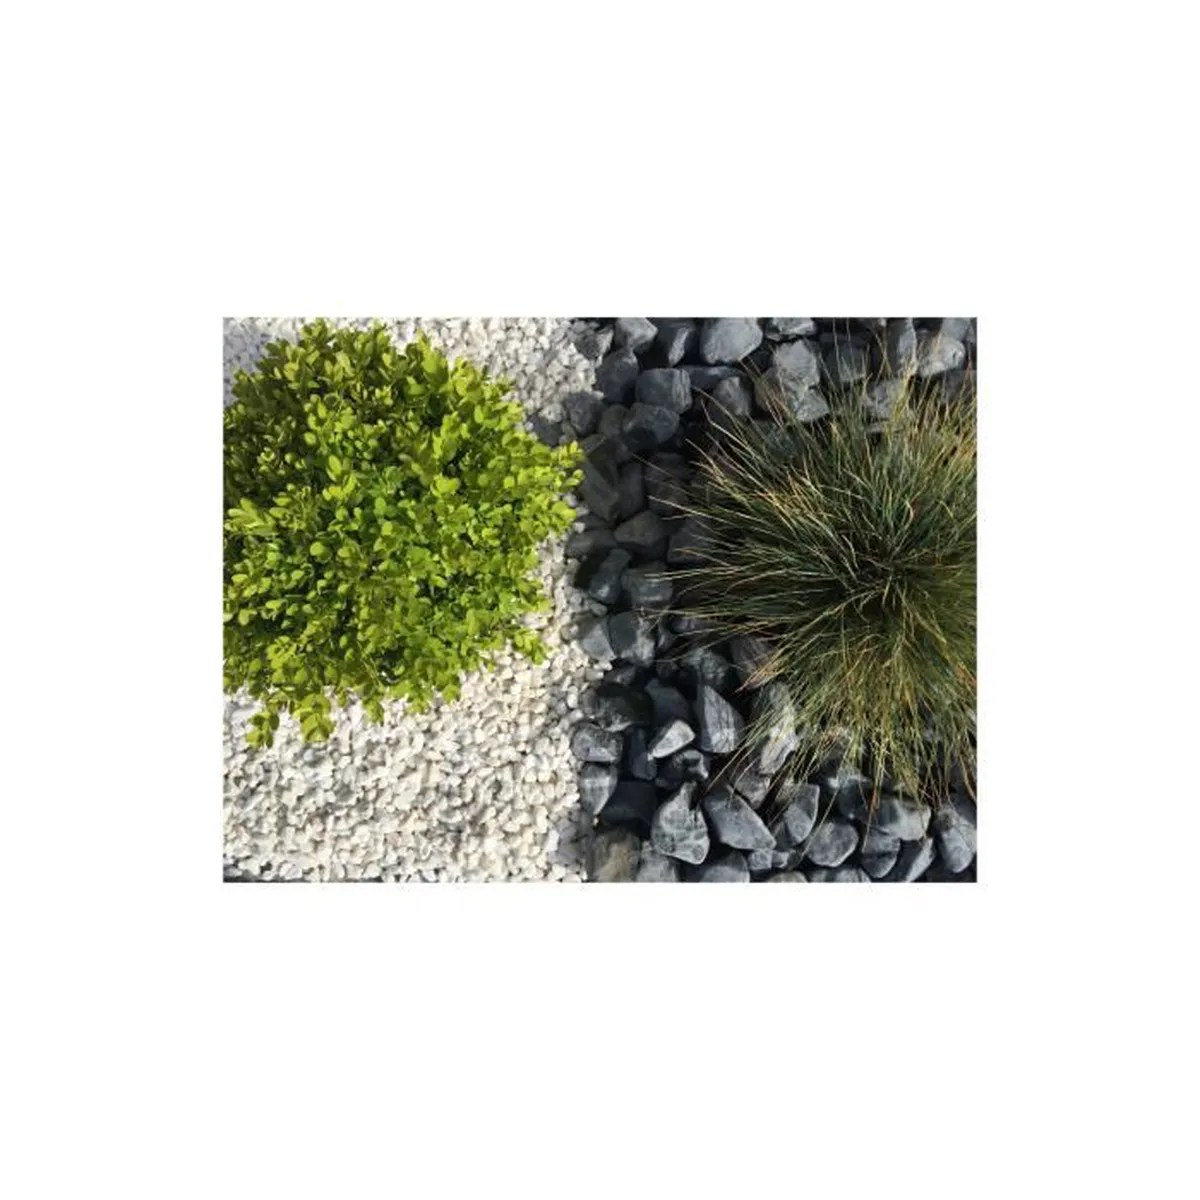 Gravier Lave Allee Jardin Gravier Blanc Pure Calibre 8 12 Mm Achat Vente Galet Gravier